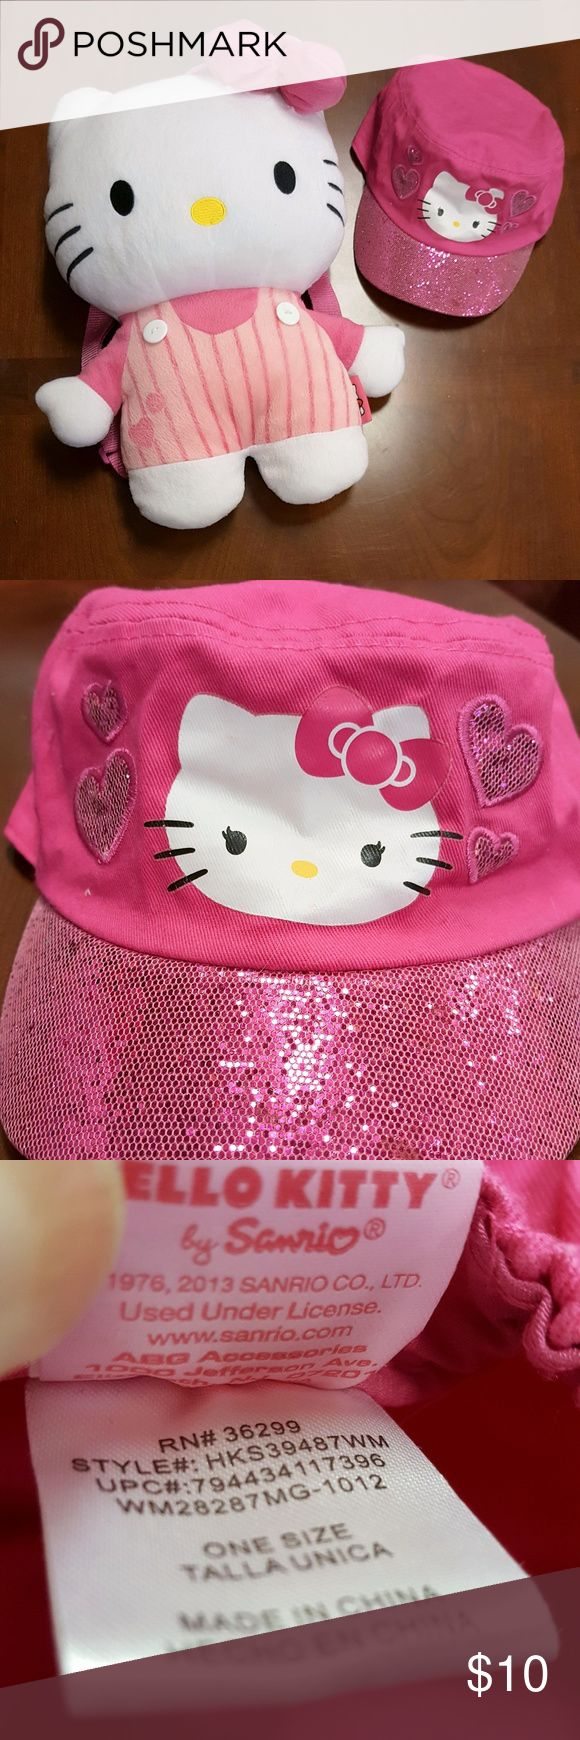 Hello Kitty Plush backpack and glittery hat Super cute Hello Kitty backpack and Hello Kitty hat with a glitter rim.  Great condition! Hello Kitty Accessories